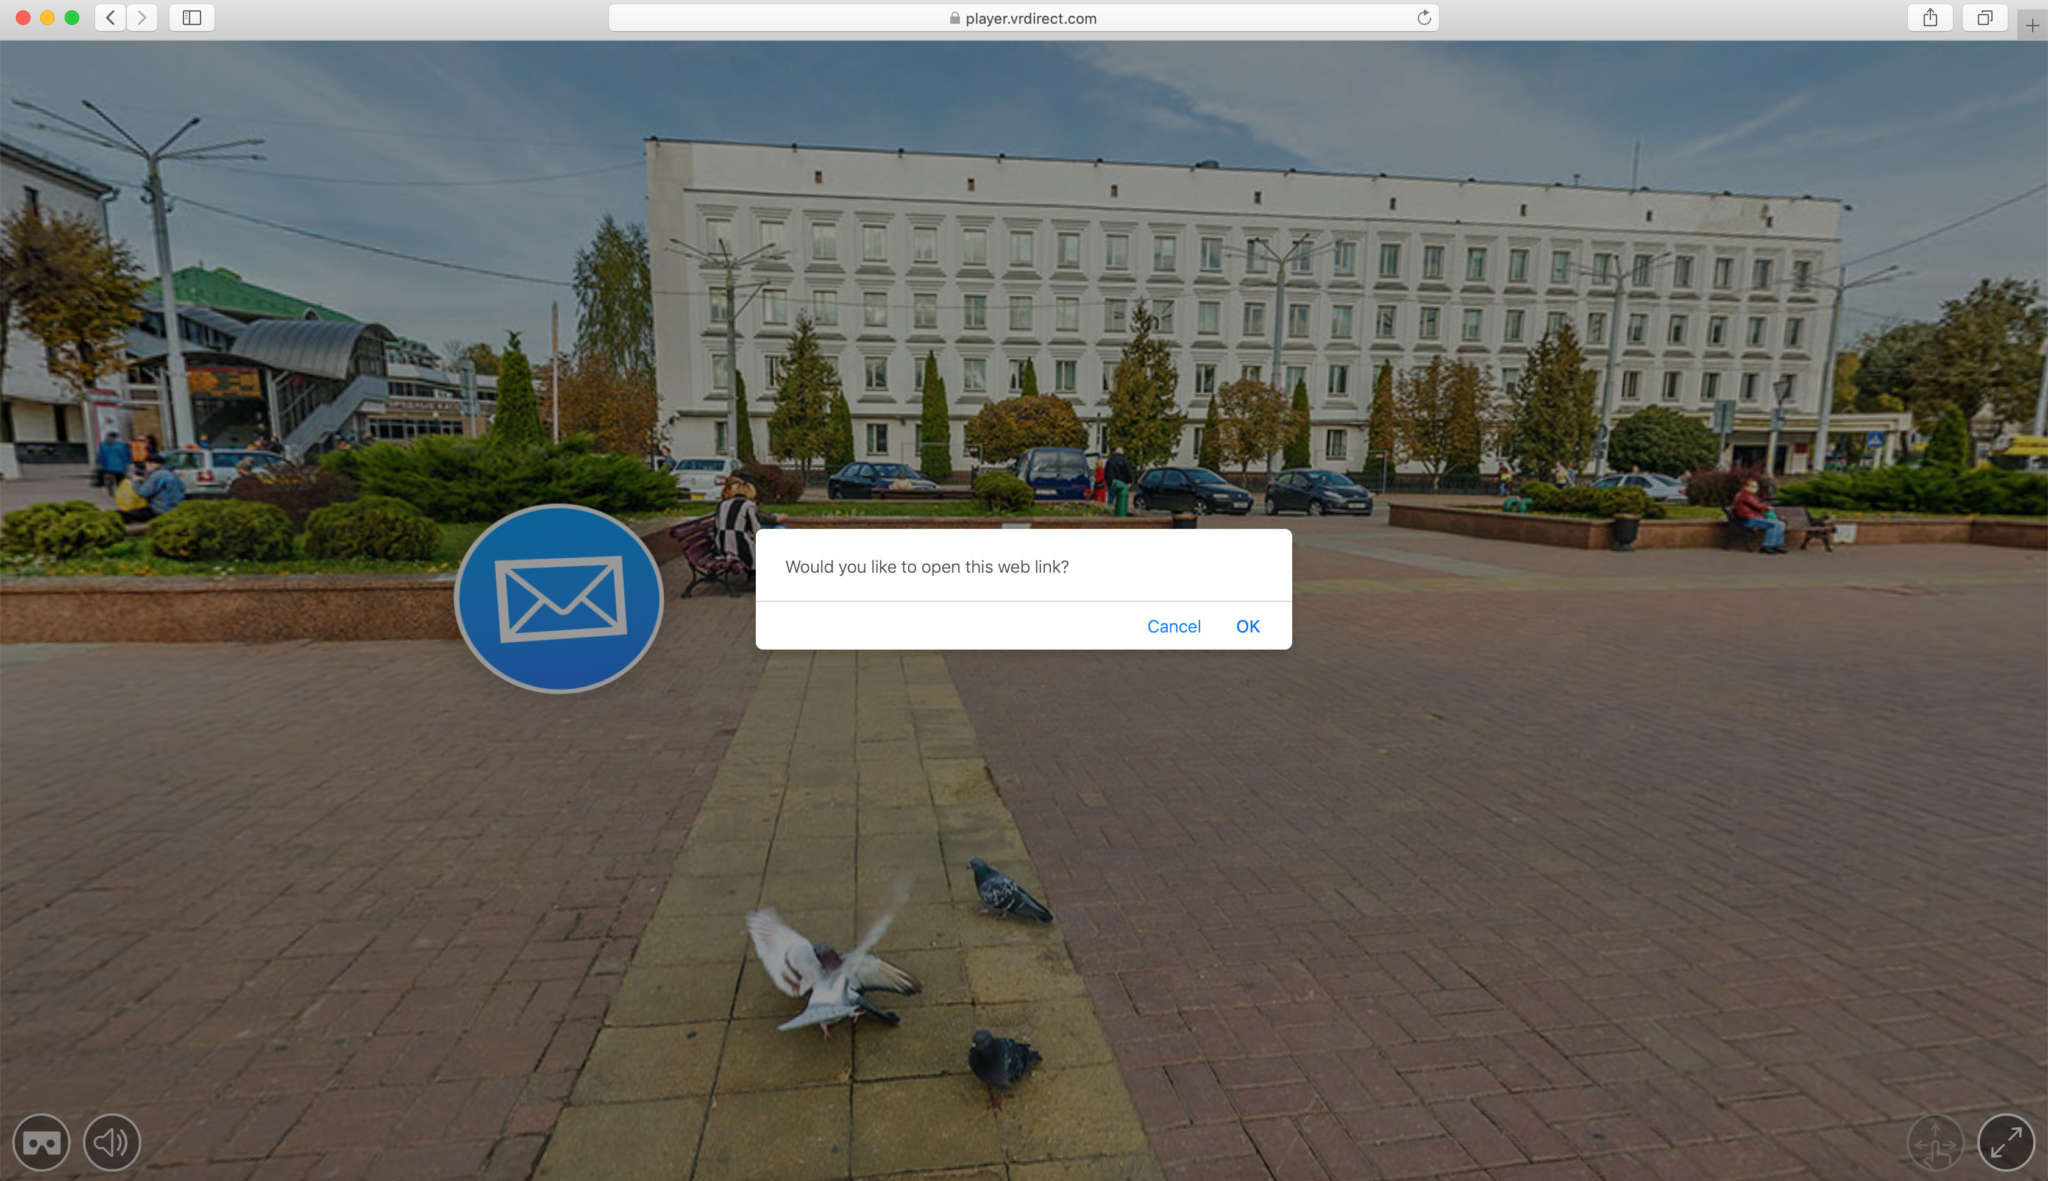 8. After uploading & publishing, check your VR project in your device